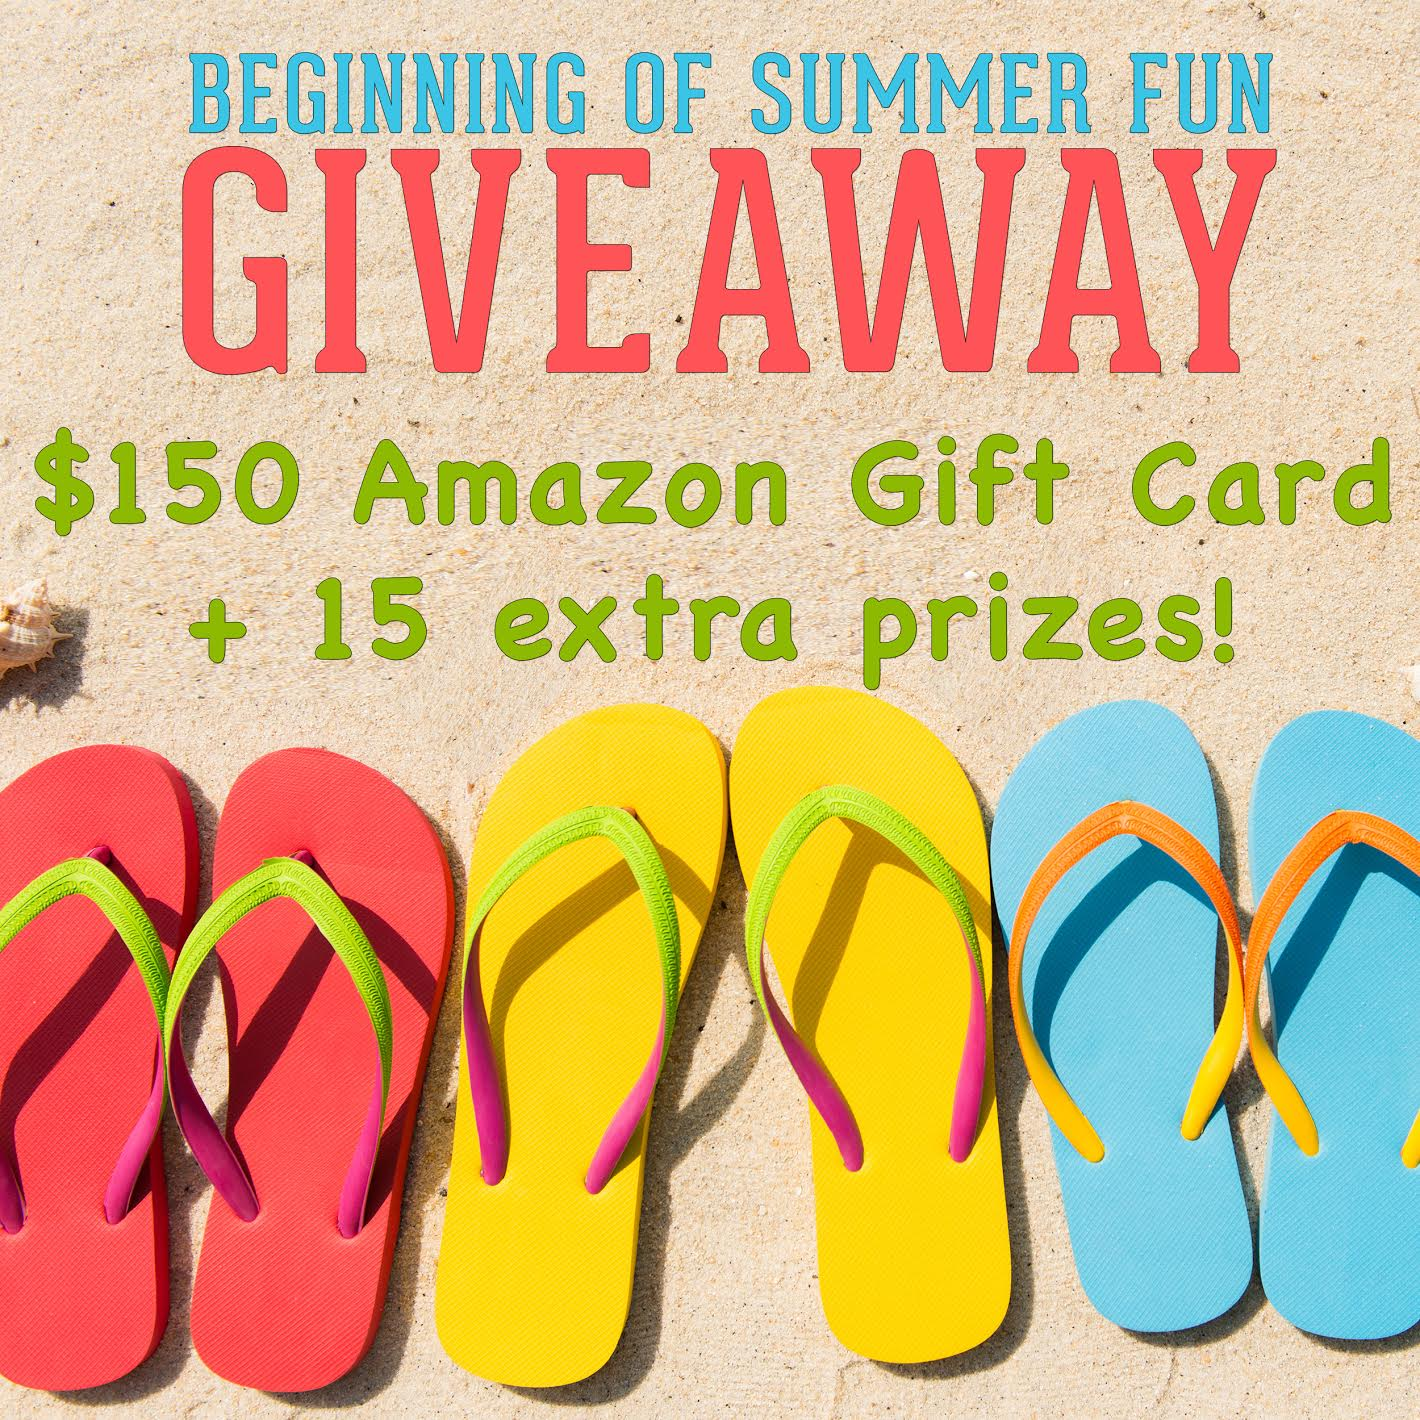 Summer Fun Giveaway!